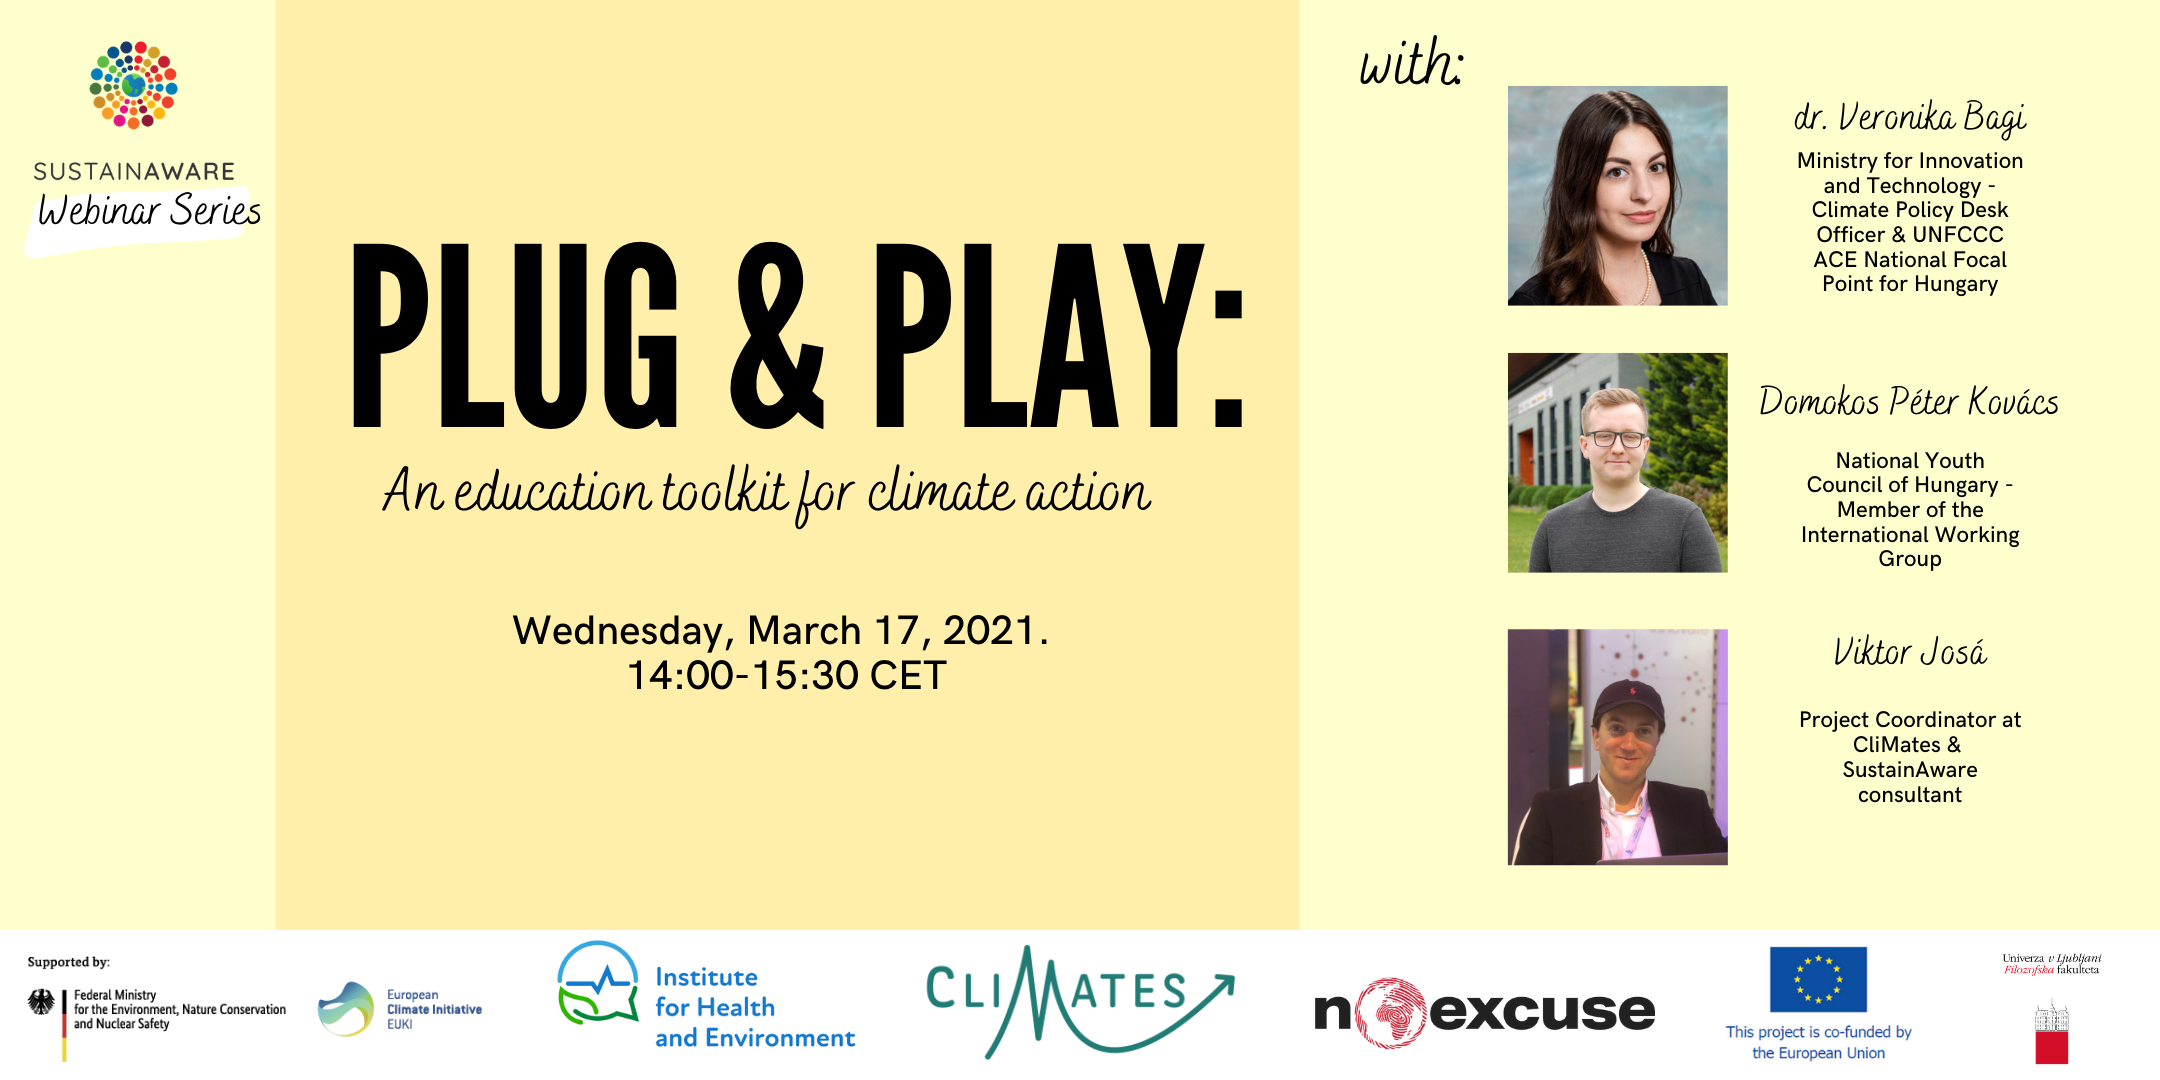 Plug & Play: An Educatin Toolkit for Climate Action